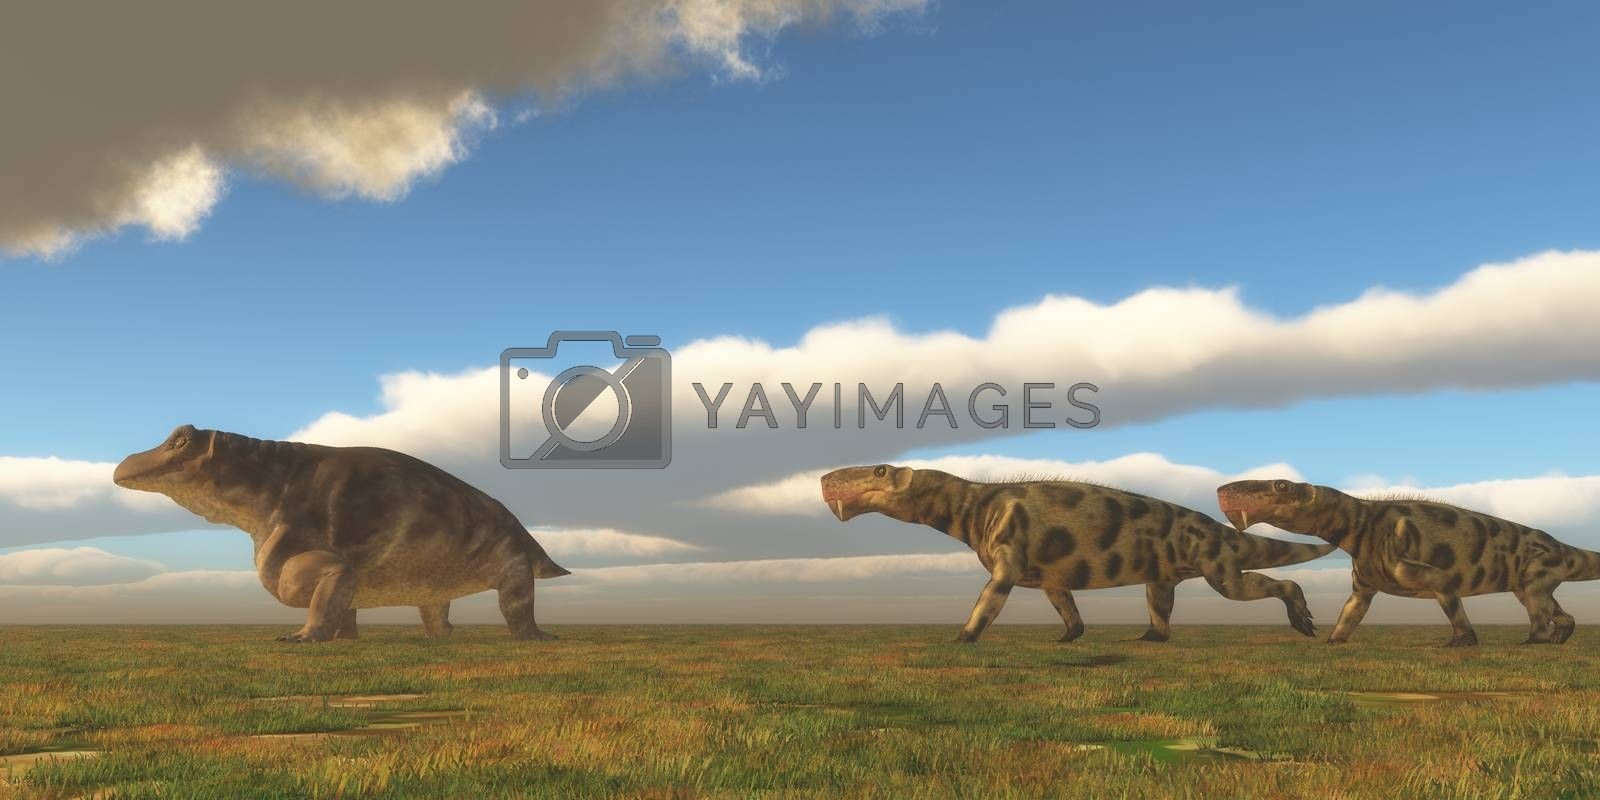 Two Inostrancevia dinosaurs go after a Keratocephalus on a grassy plain in the Permian Period.